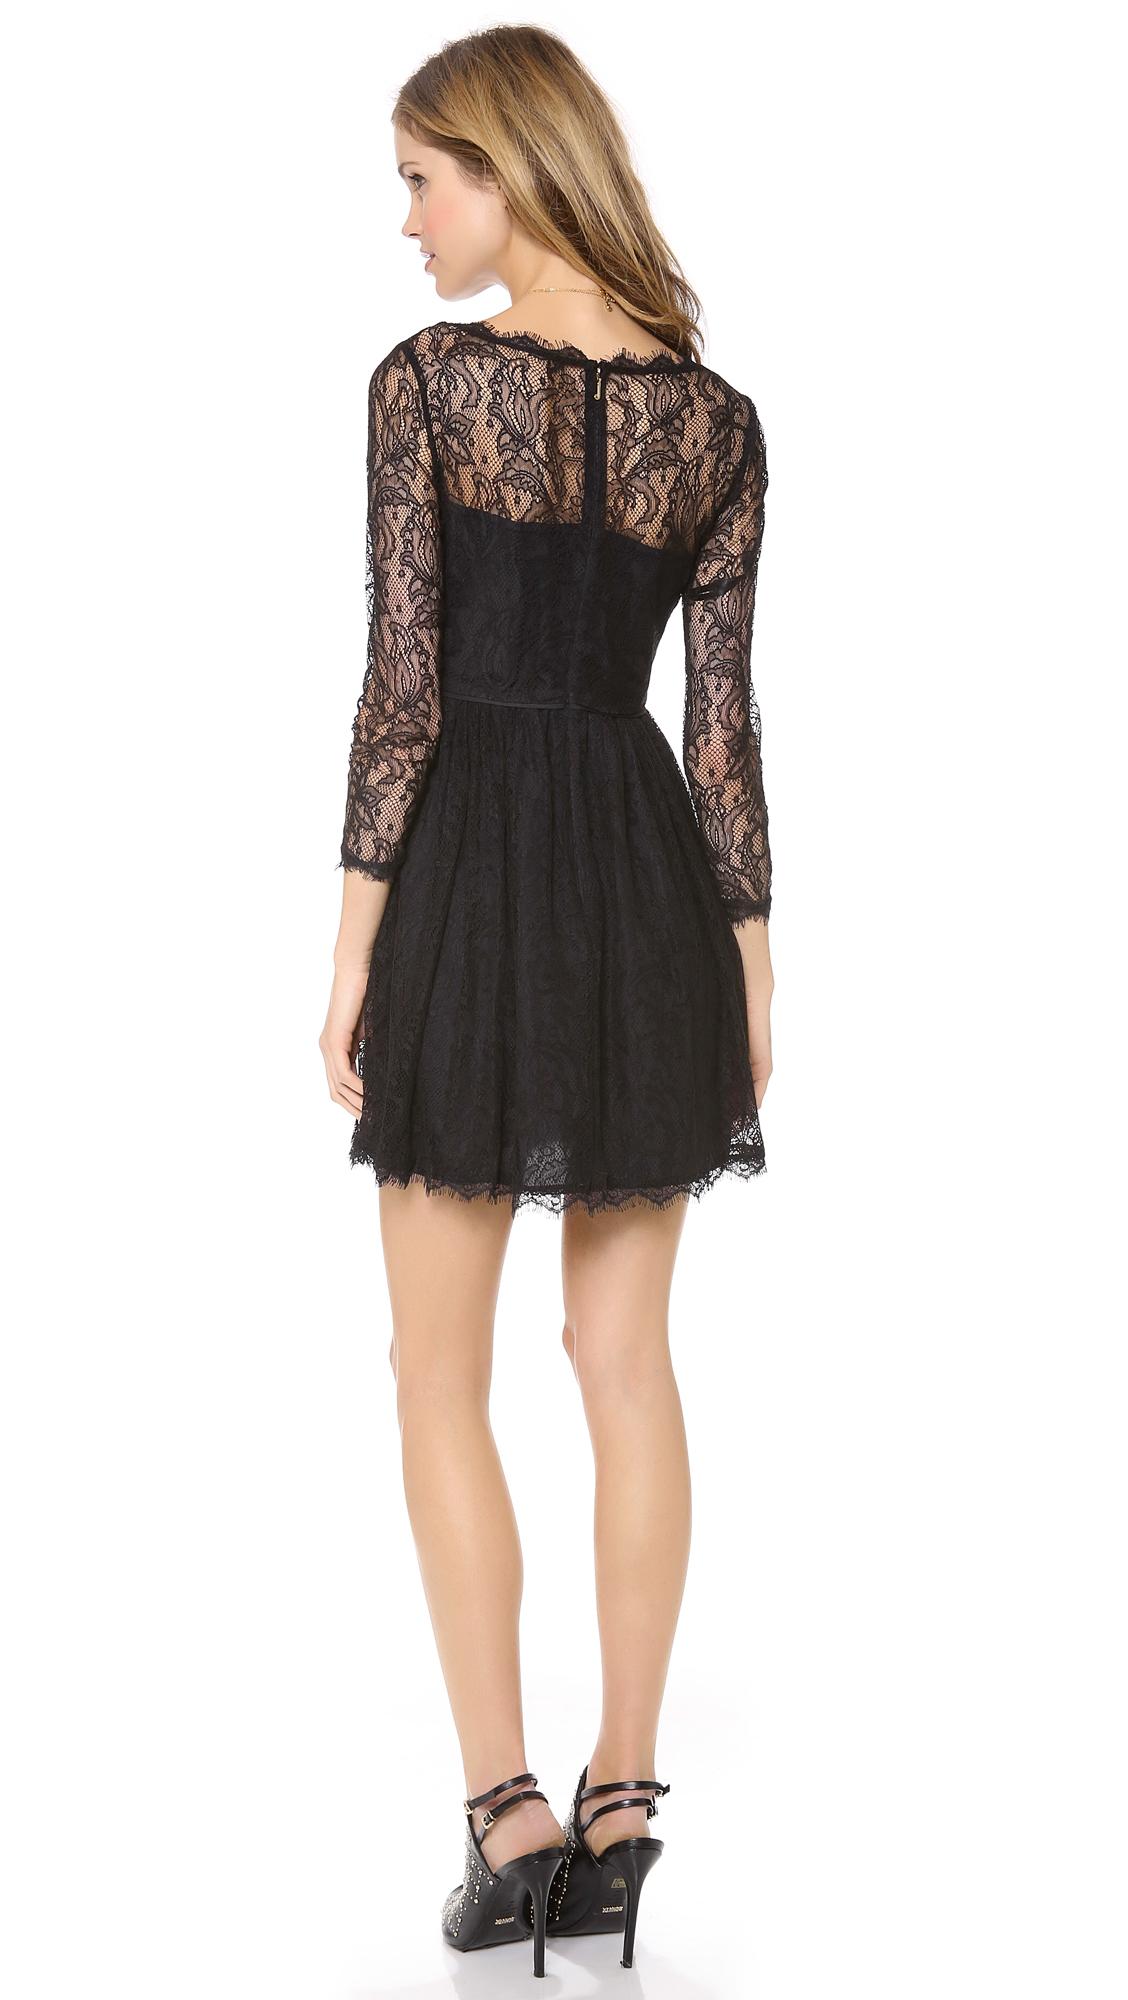 Juicy couture green lace dress